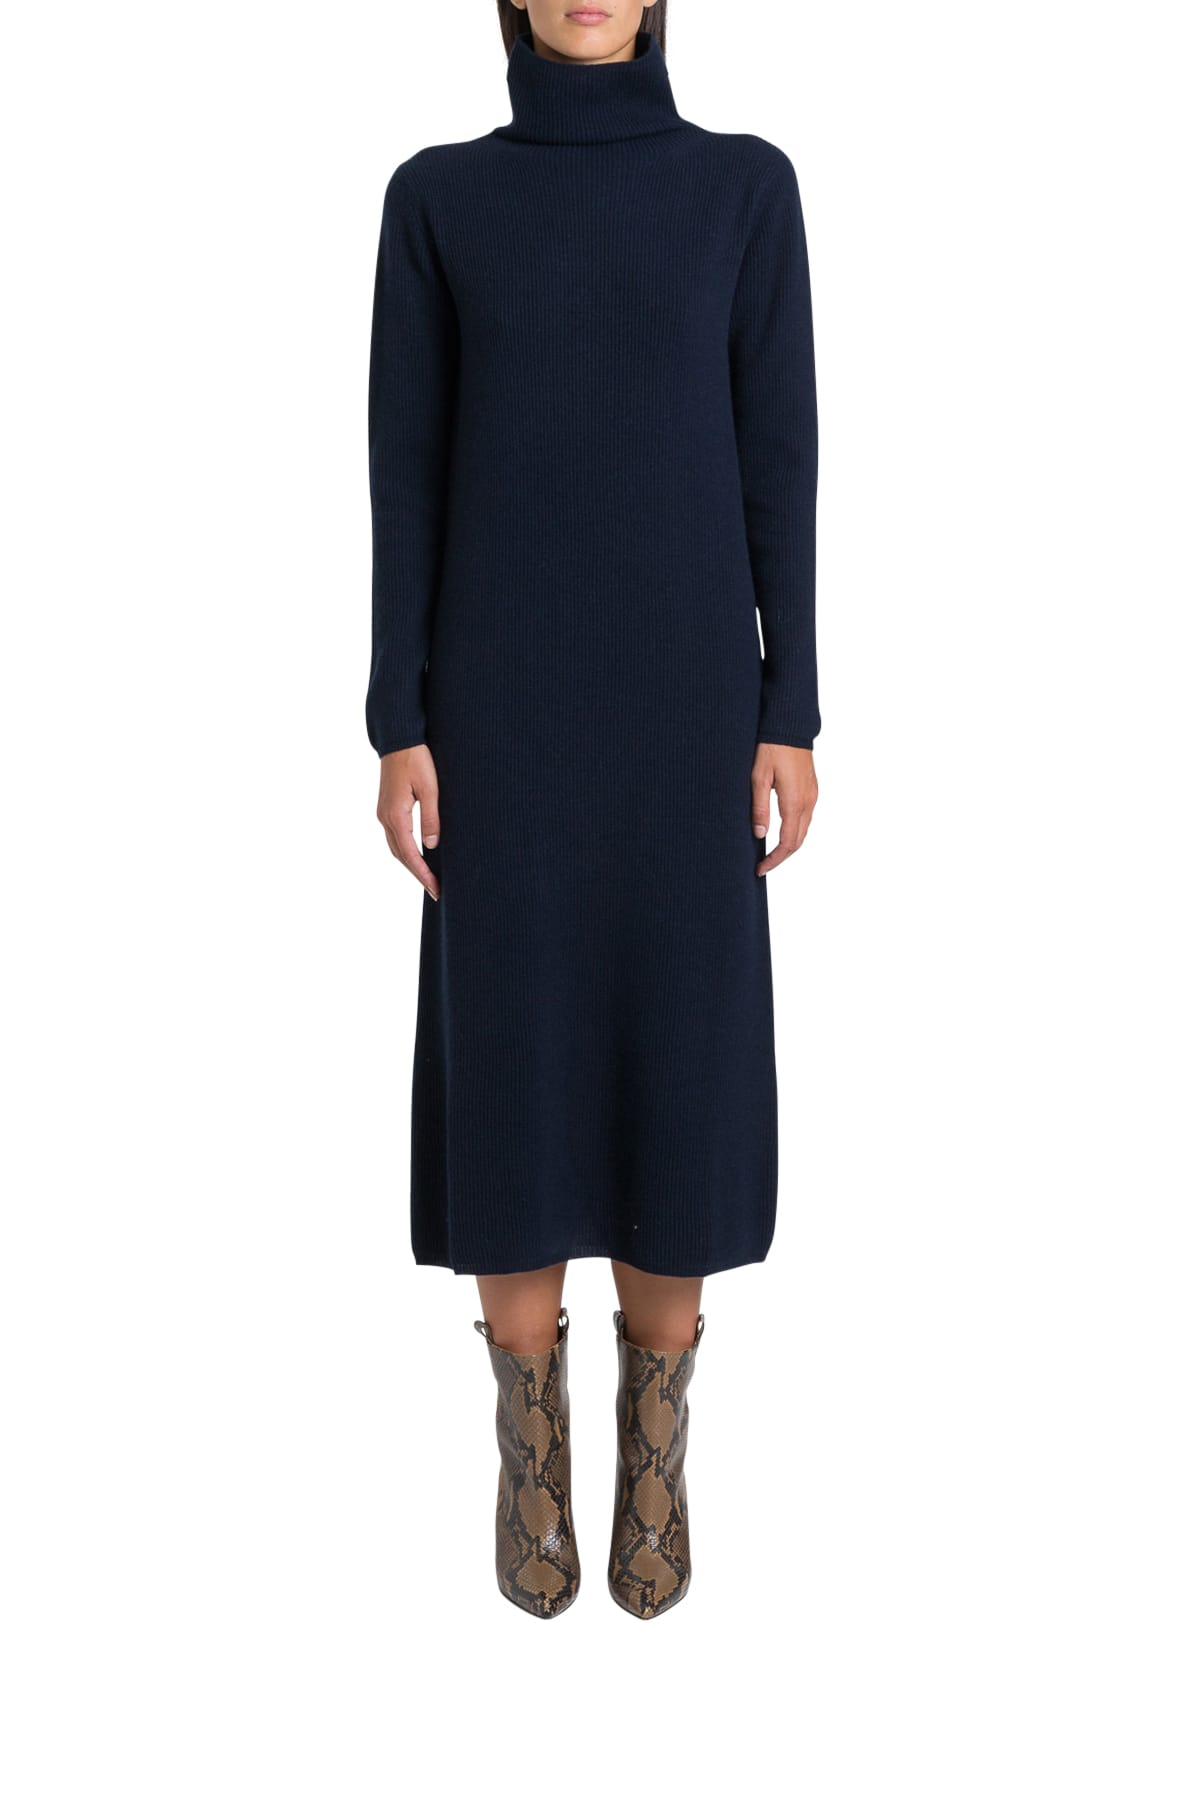 S Max Mara Here is The Cube Bernini Knit Dress